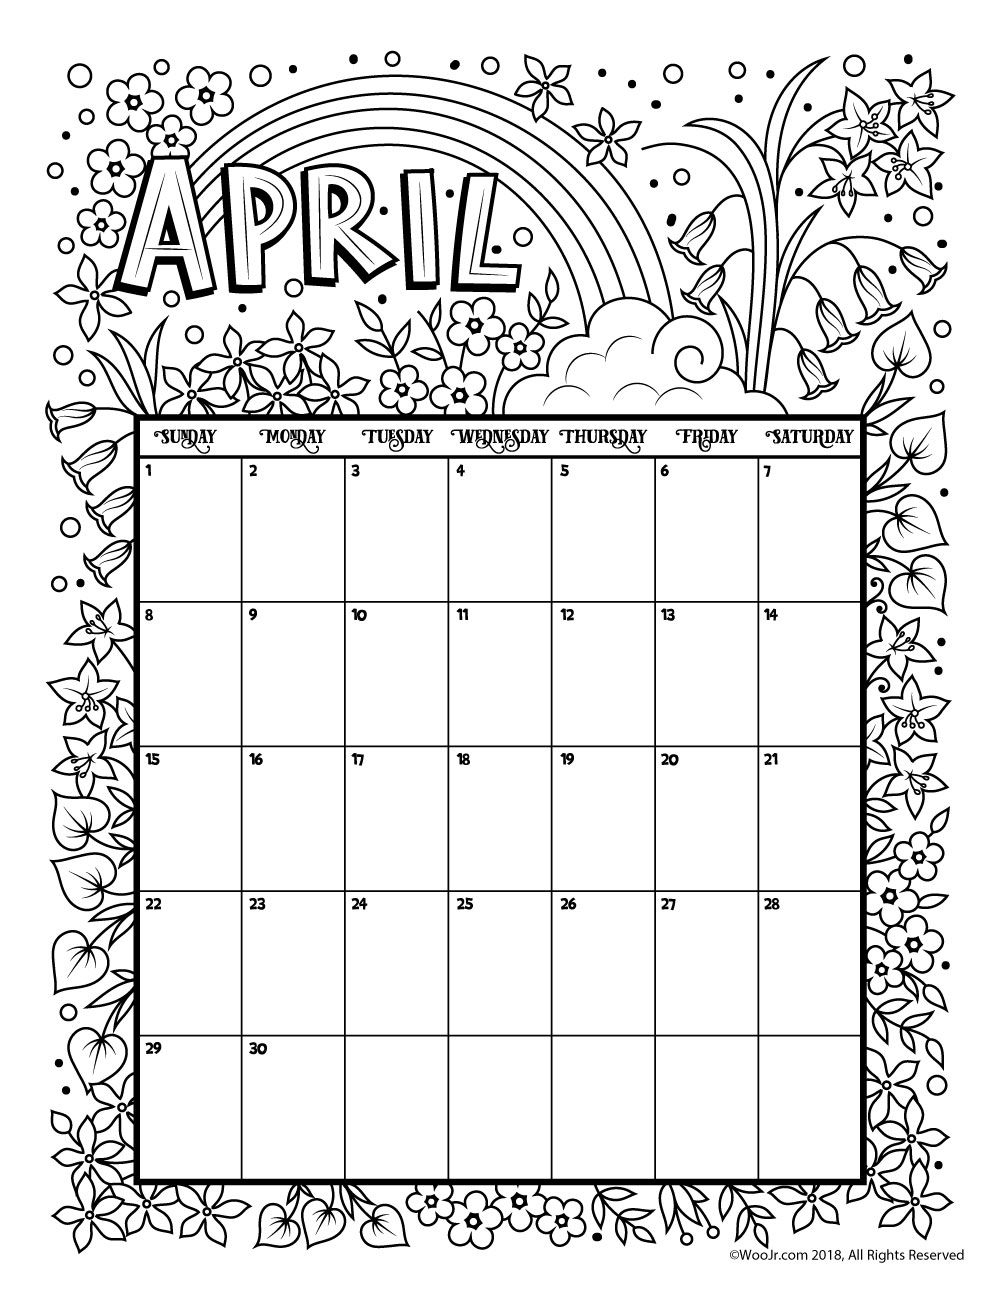 Printable Coloring Calendar For 2019 (And 2018!) | Holiday Happiness with Free Coloring Calendars For June